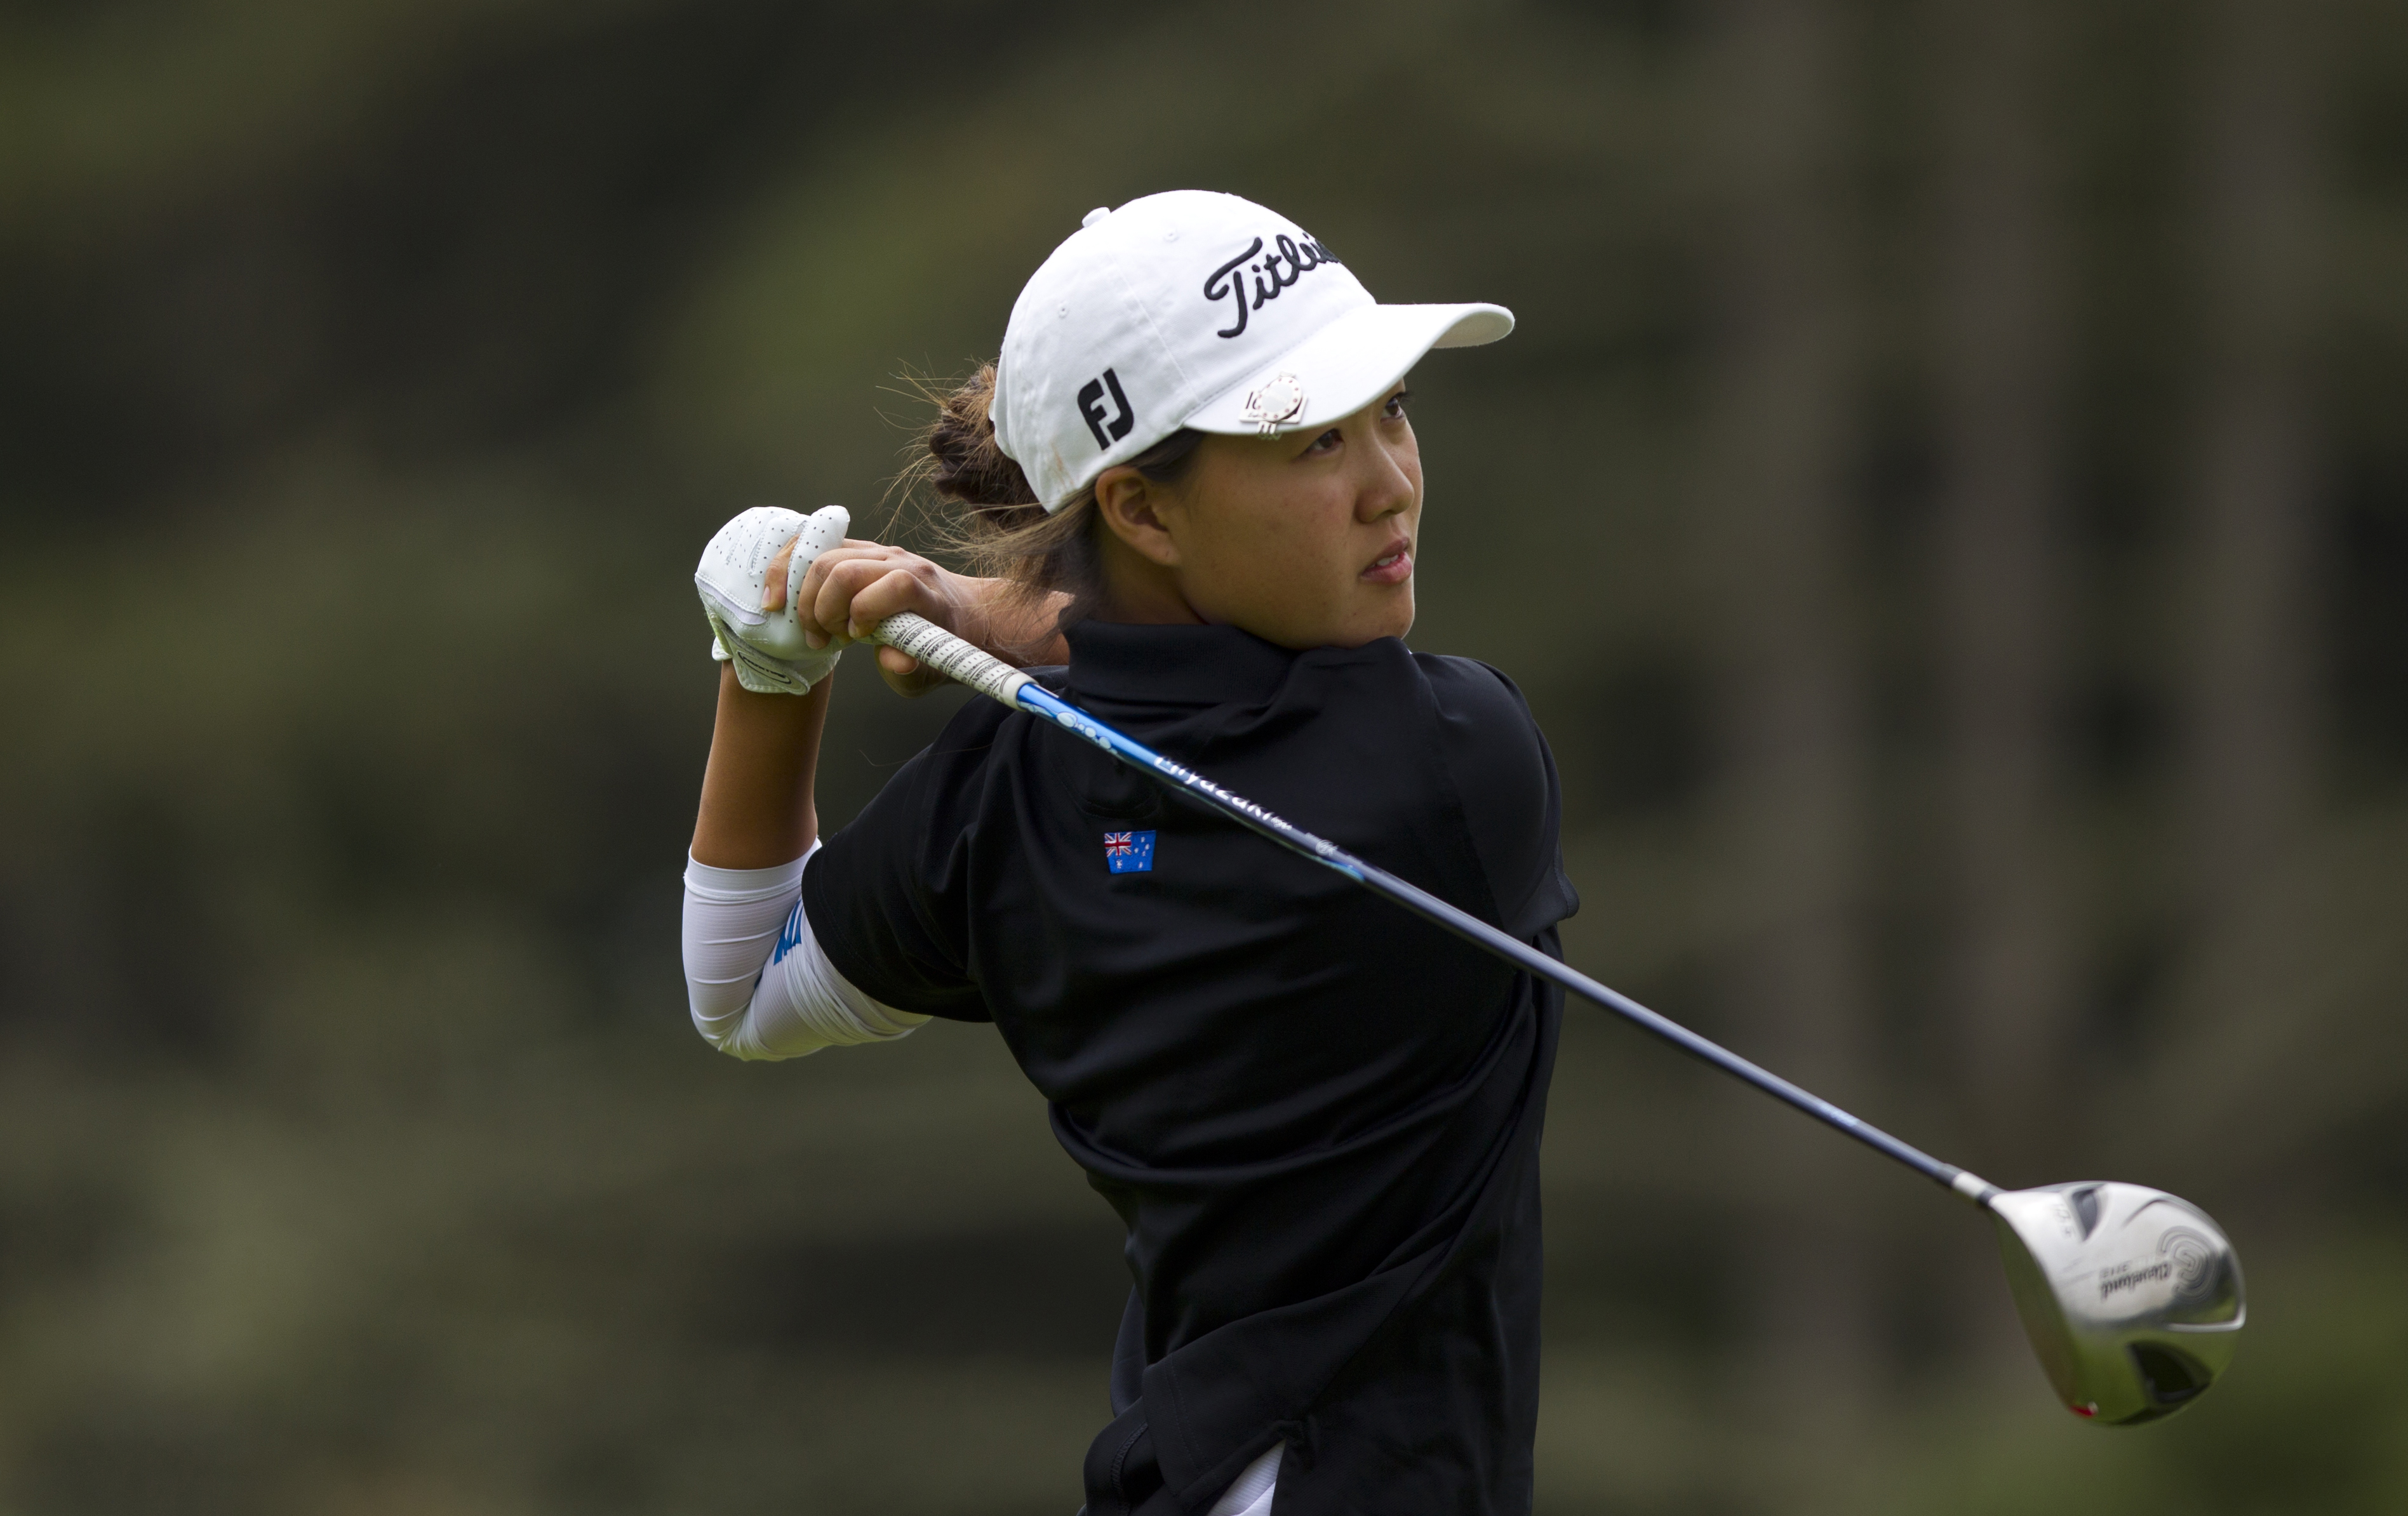 2012 U.S. Girls' Junior Minjee Lee